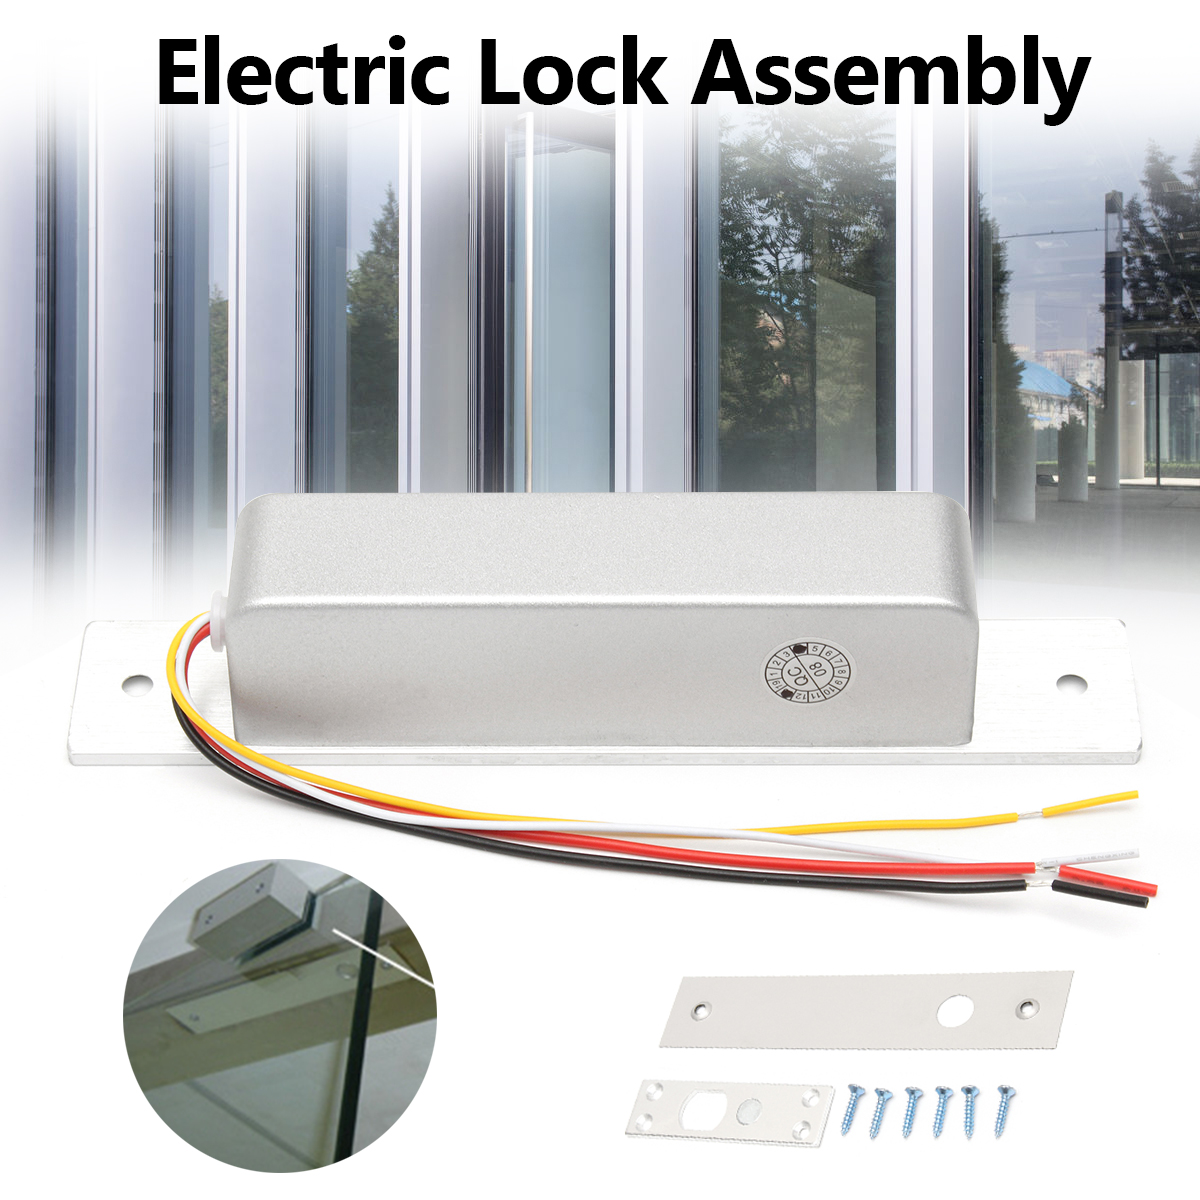 DC 12/24V Aluminium Alloy Ultra-low Temperature Electric Bolt Lock Delay Power off Lock Door Access Control System Security Lock dc 12v electric bolt lock with low temperature aluminium alloy for door controller magnetic induction electric bolt lock